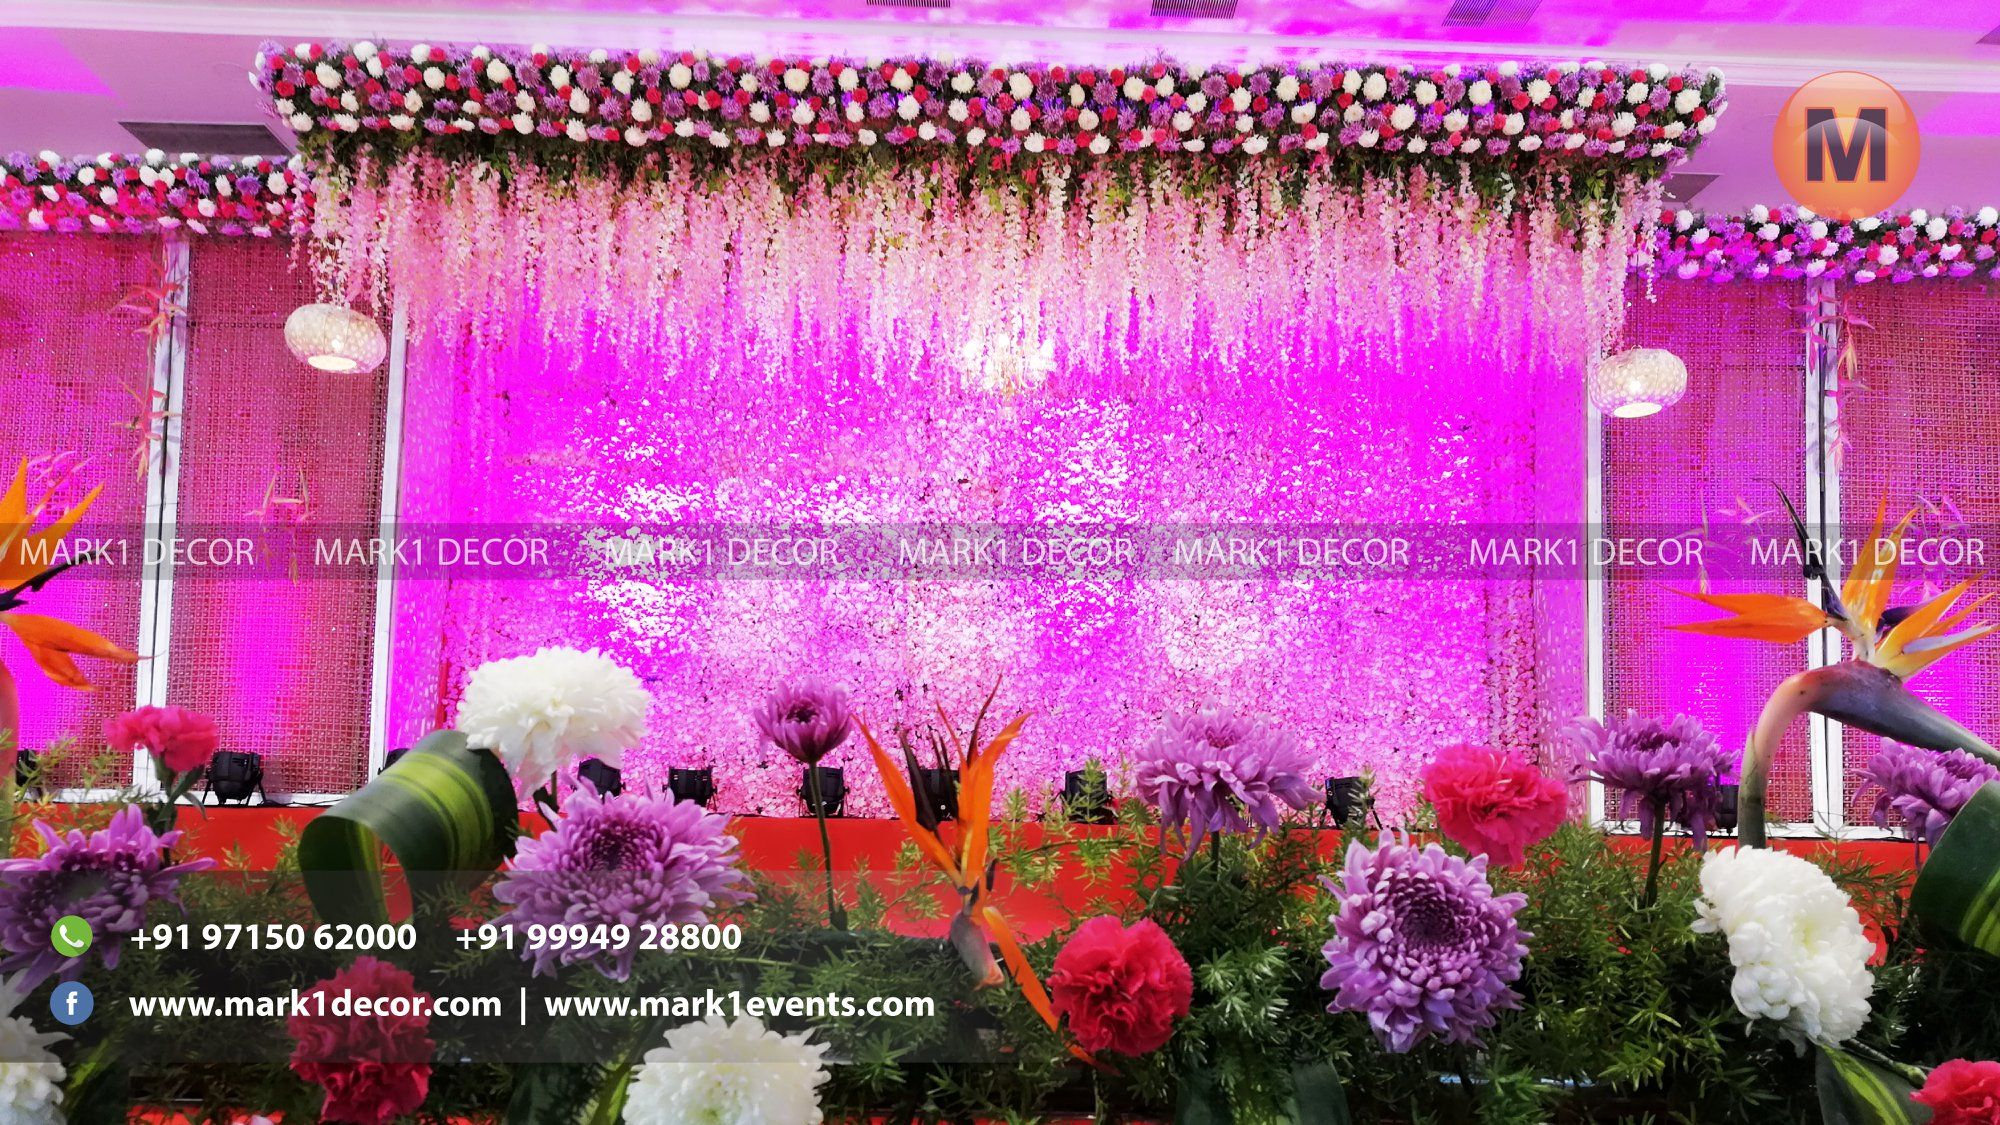 wedding stage decoration pics%0A Design Of Kerala Wedding Stage Decoration And House Design Kerala   get  organised Wedding plan   Pinterest   Wedding stage decorations  Wedding  stage and